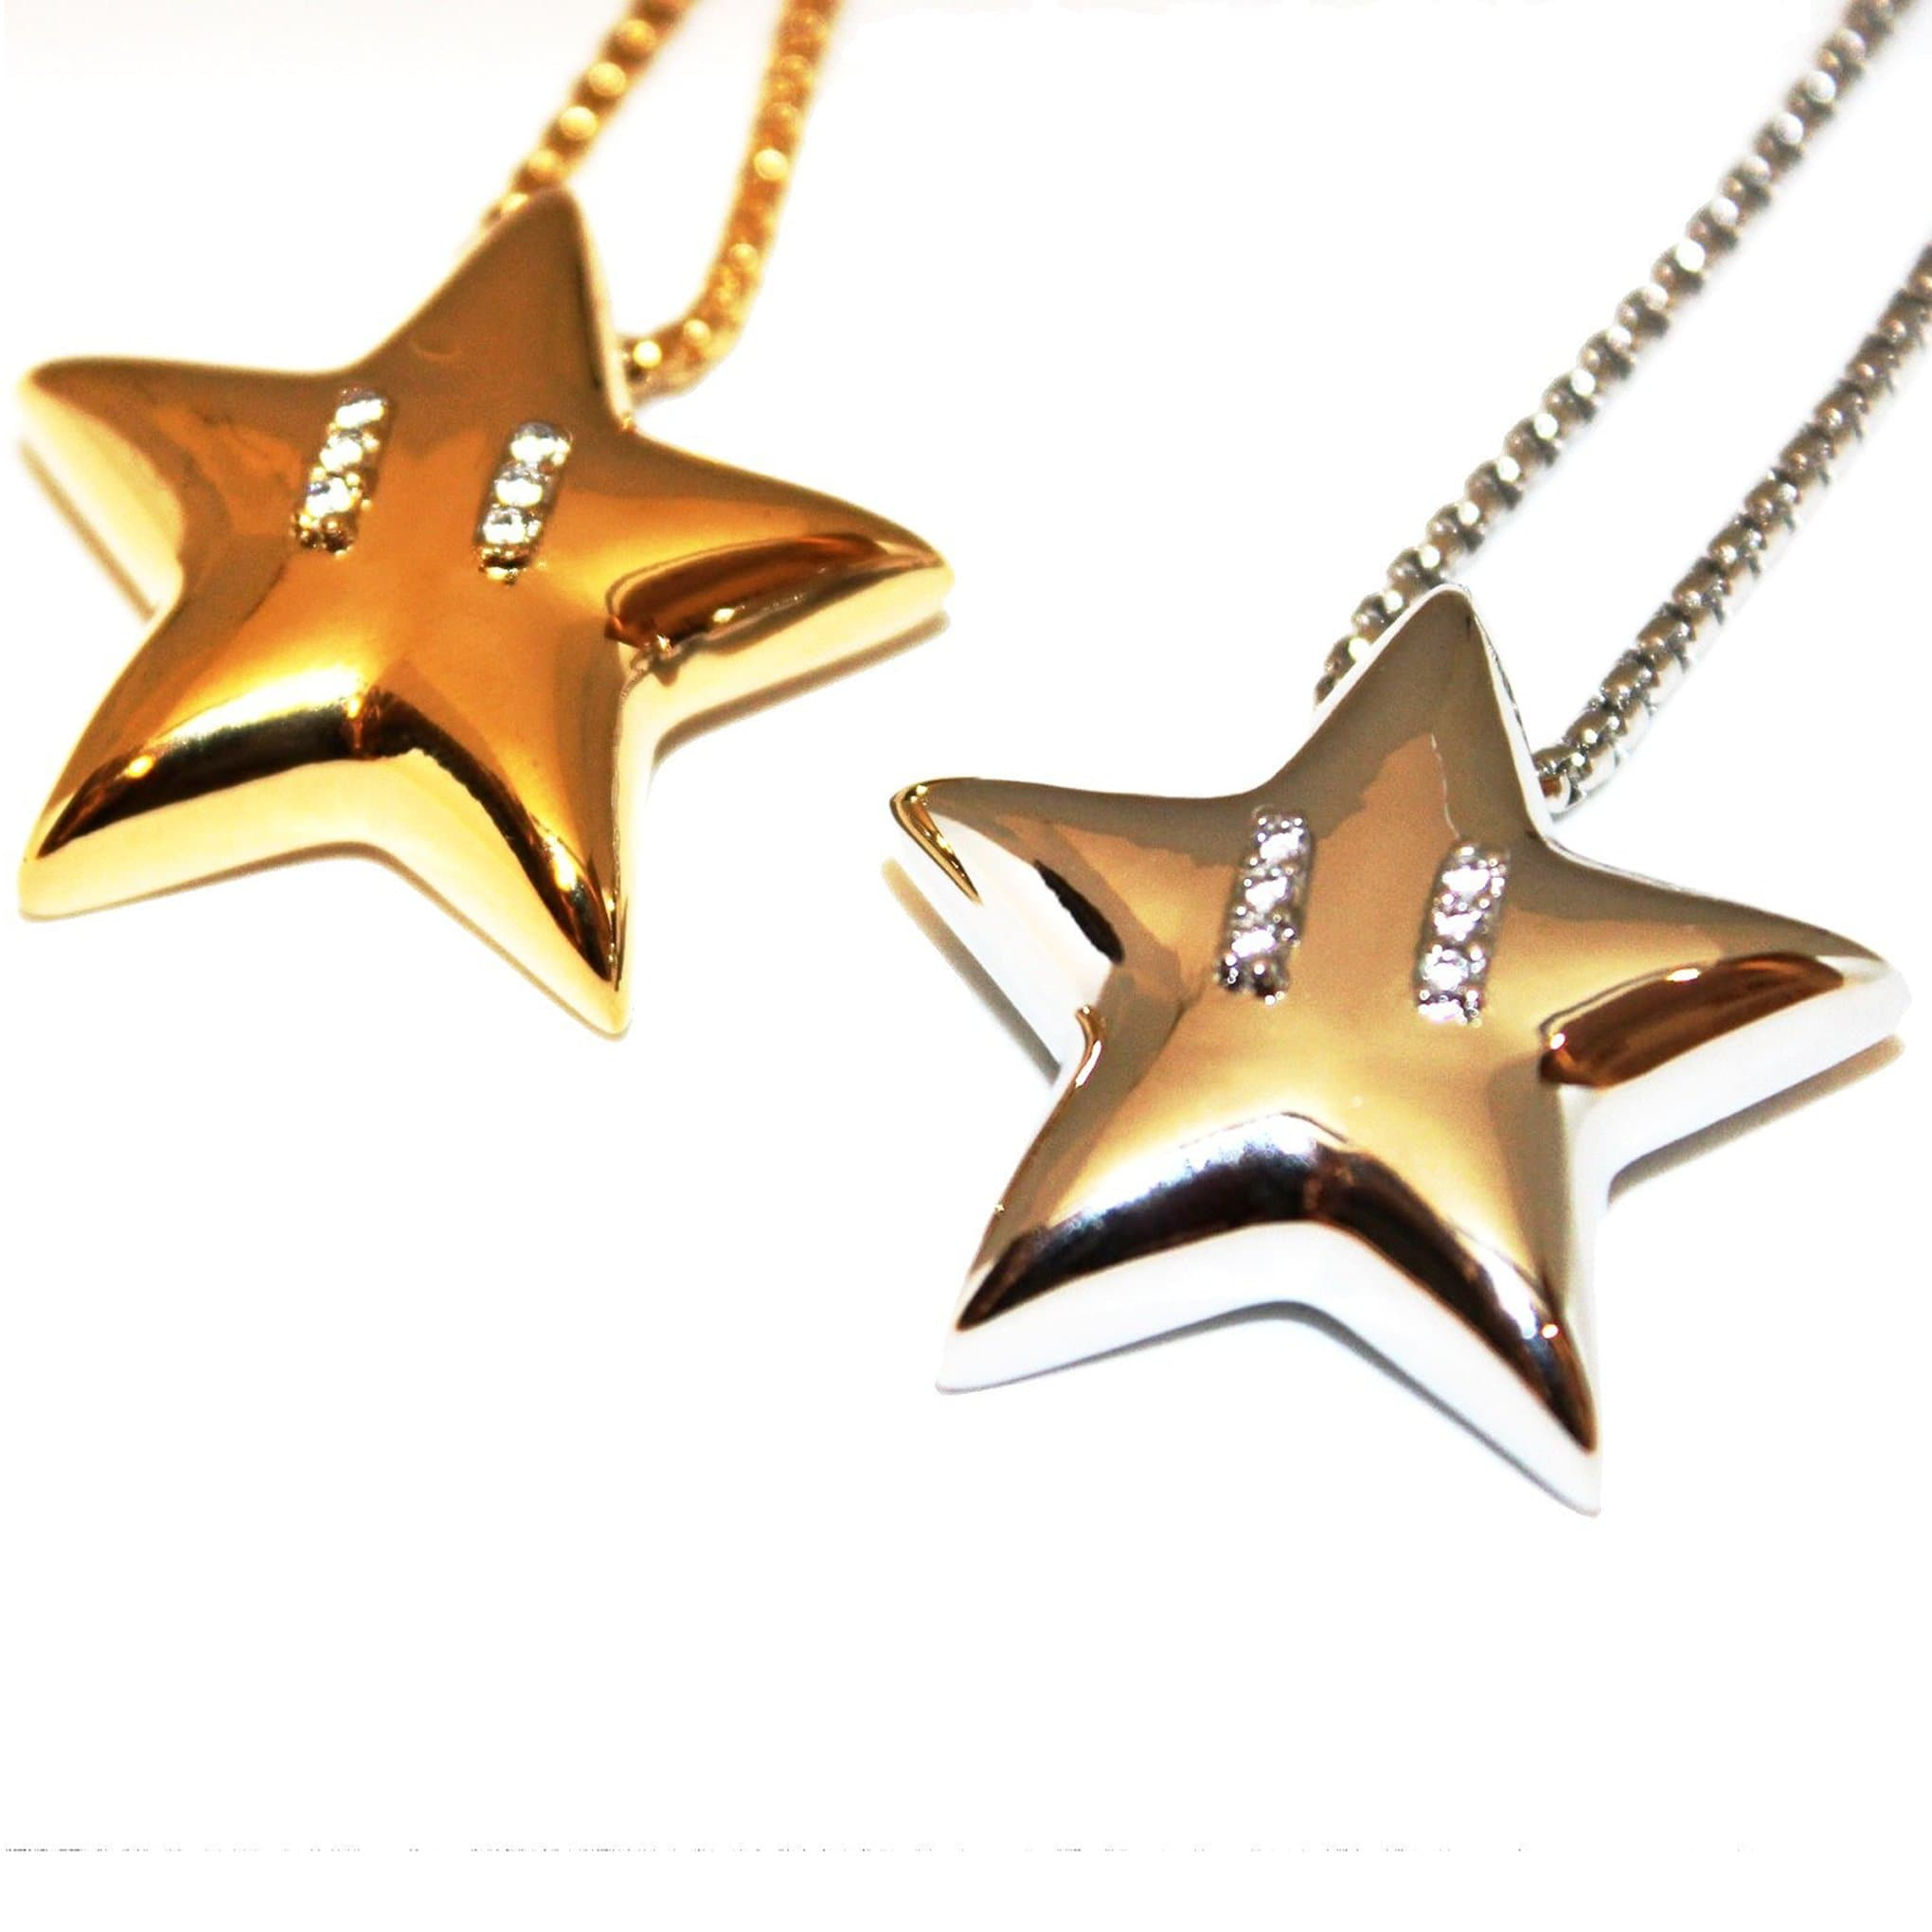 Super Mario Star Necklace